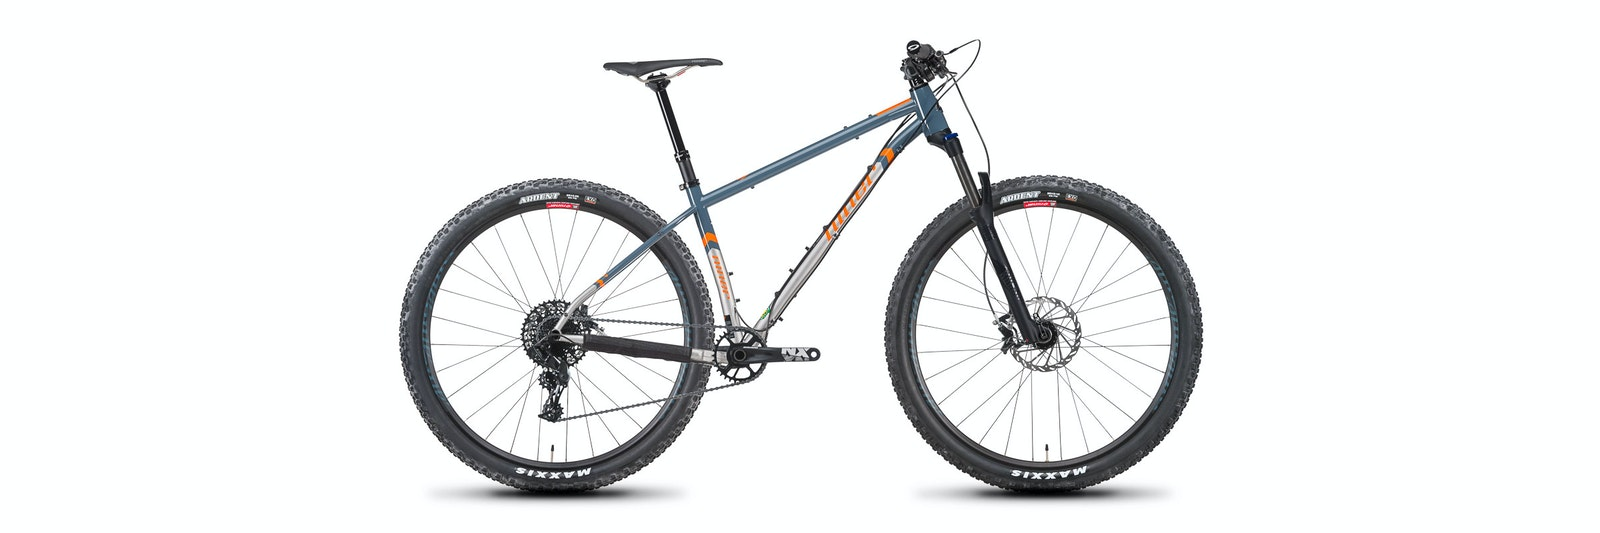 Niner Sir 9 1 Star 29 2018 | Hardtail Mountain Bikes for sale in SAN ...